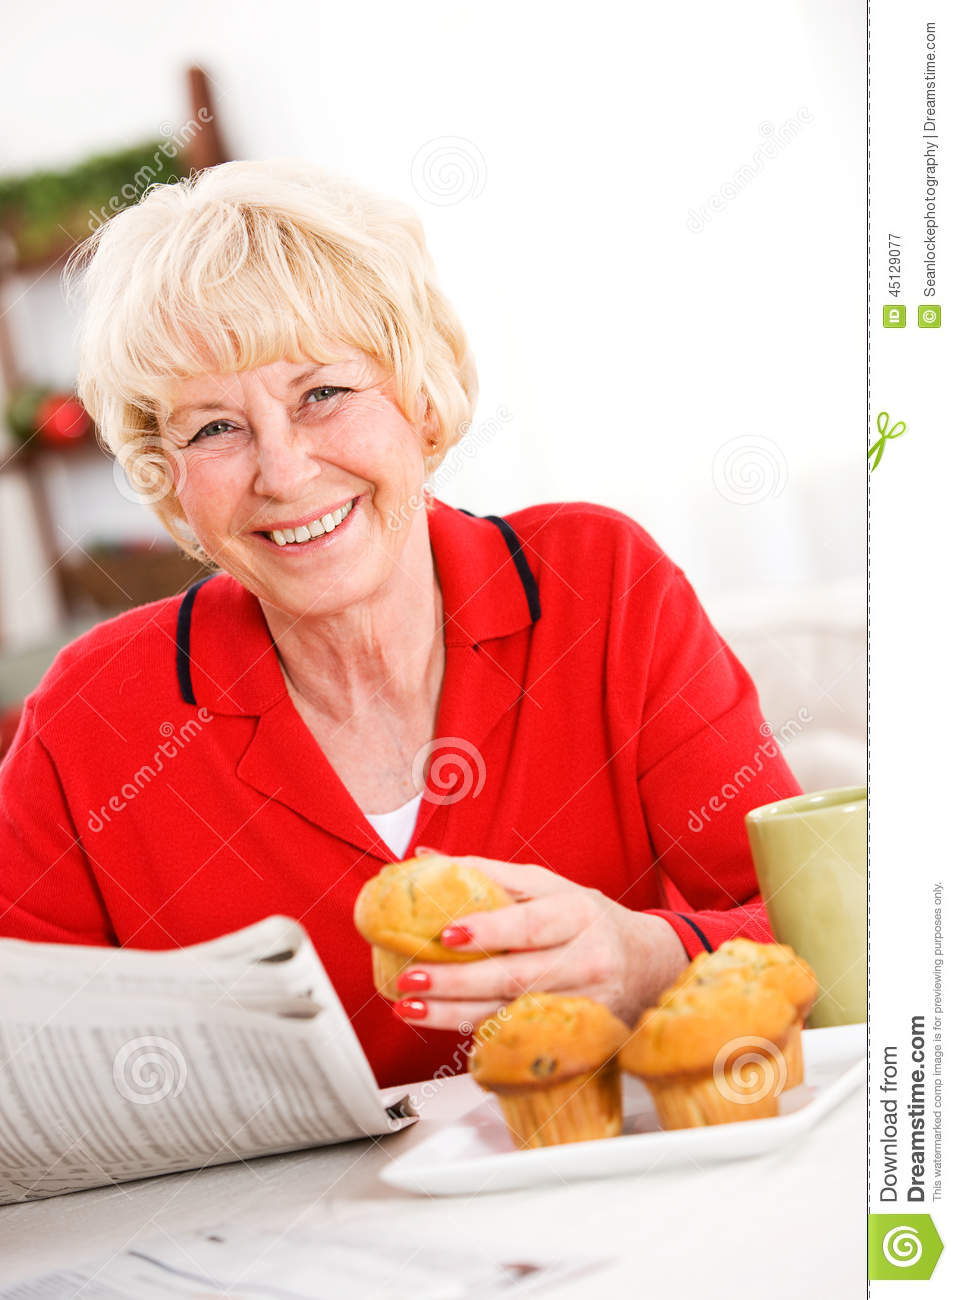 Seniors: Woman Having A Muffin and Newspaper